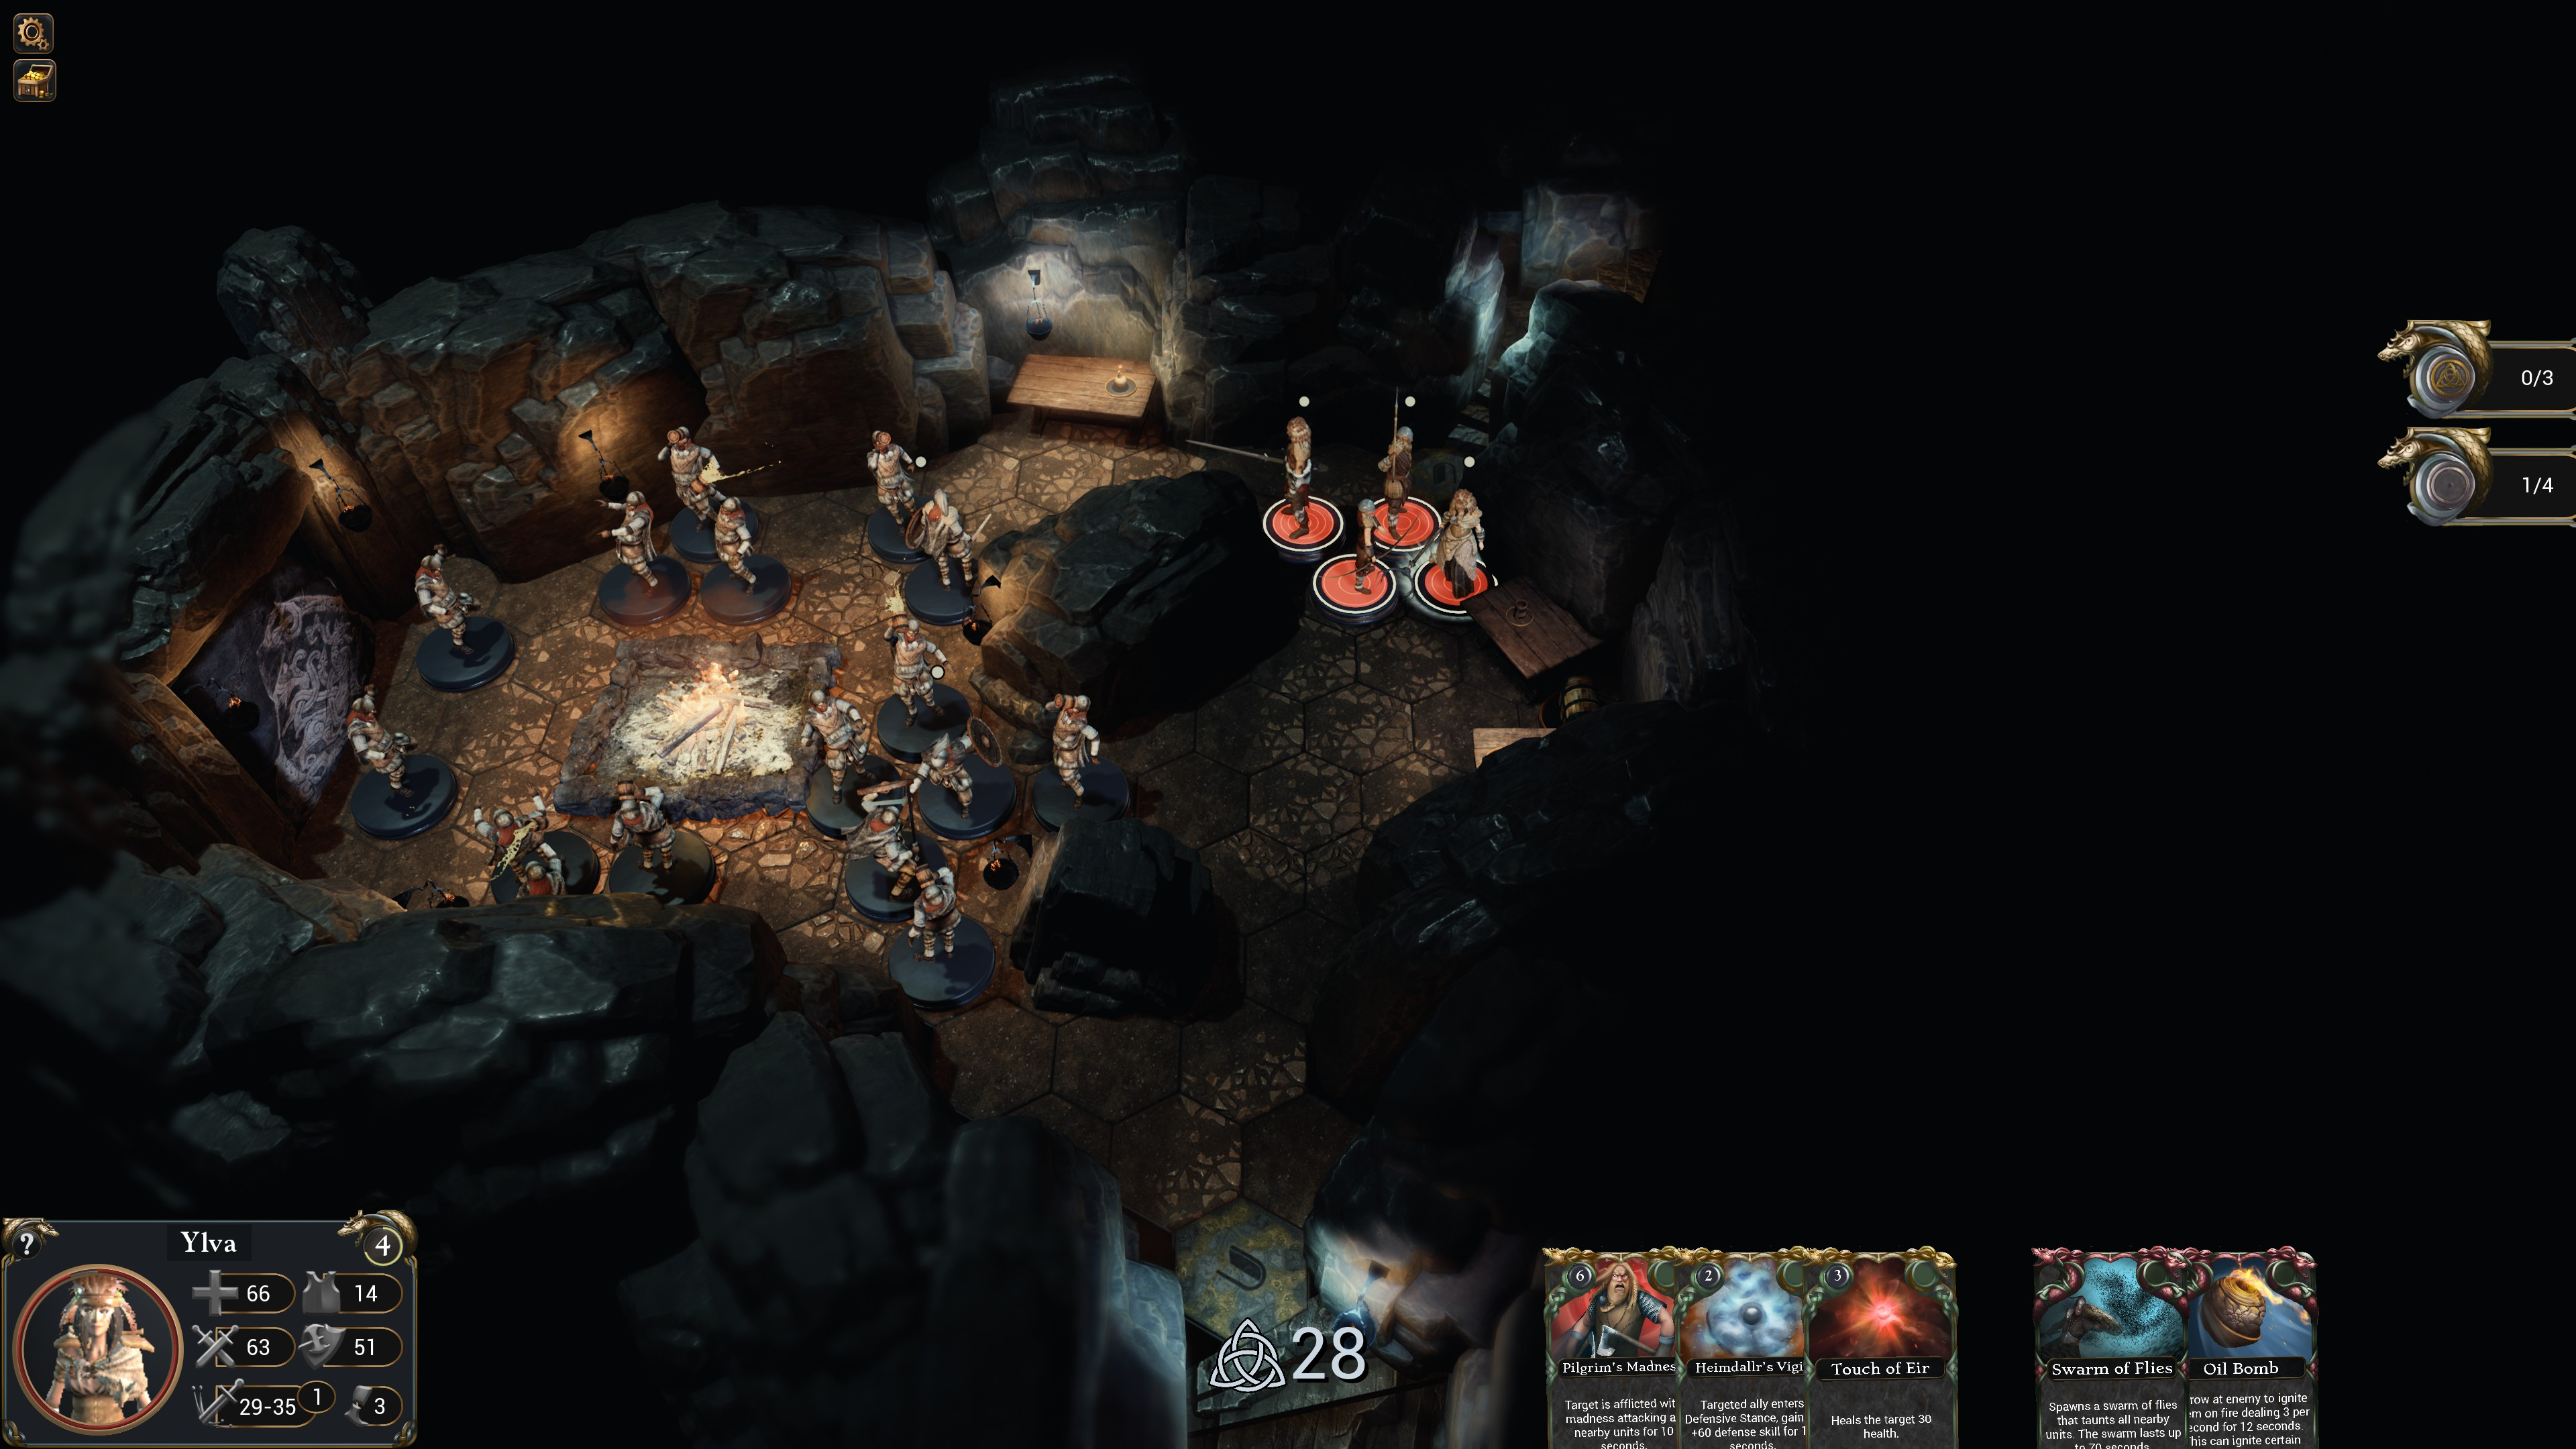 Fours figurines in an underground room filled with enemies that have not seen them yet